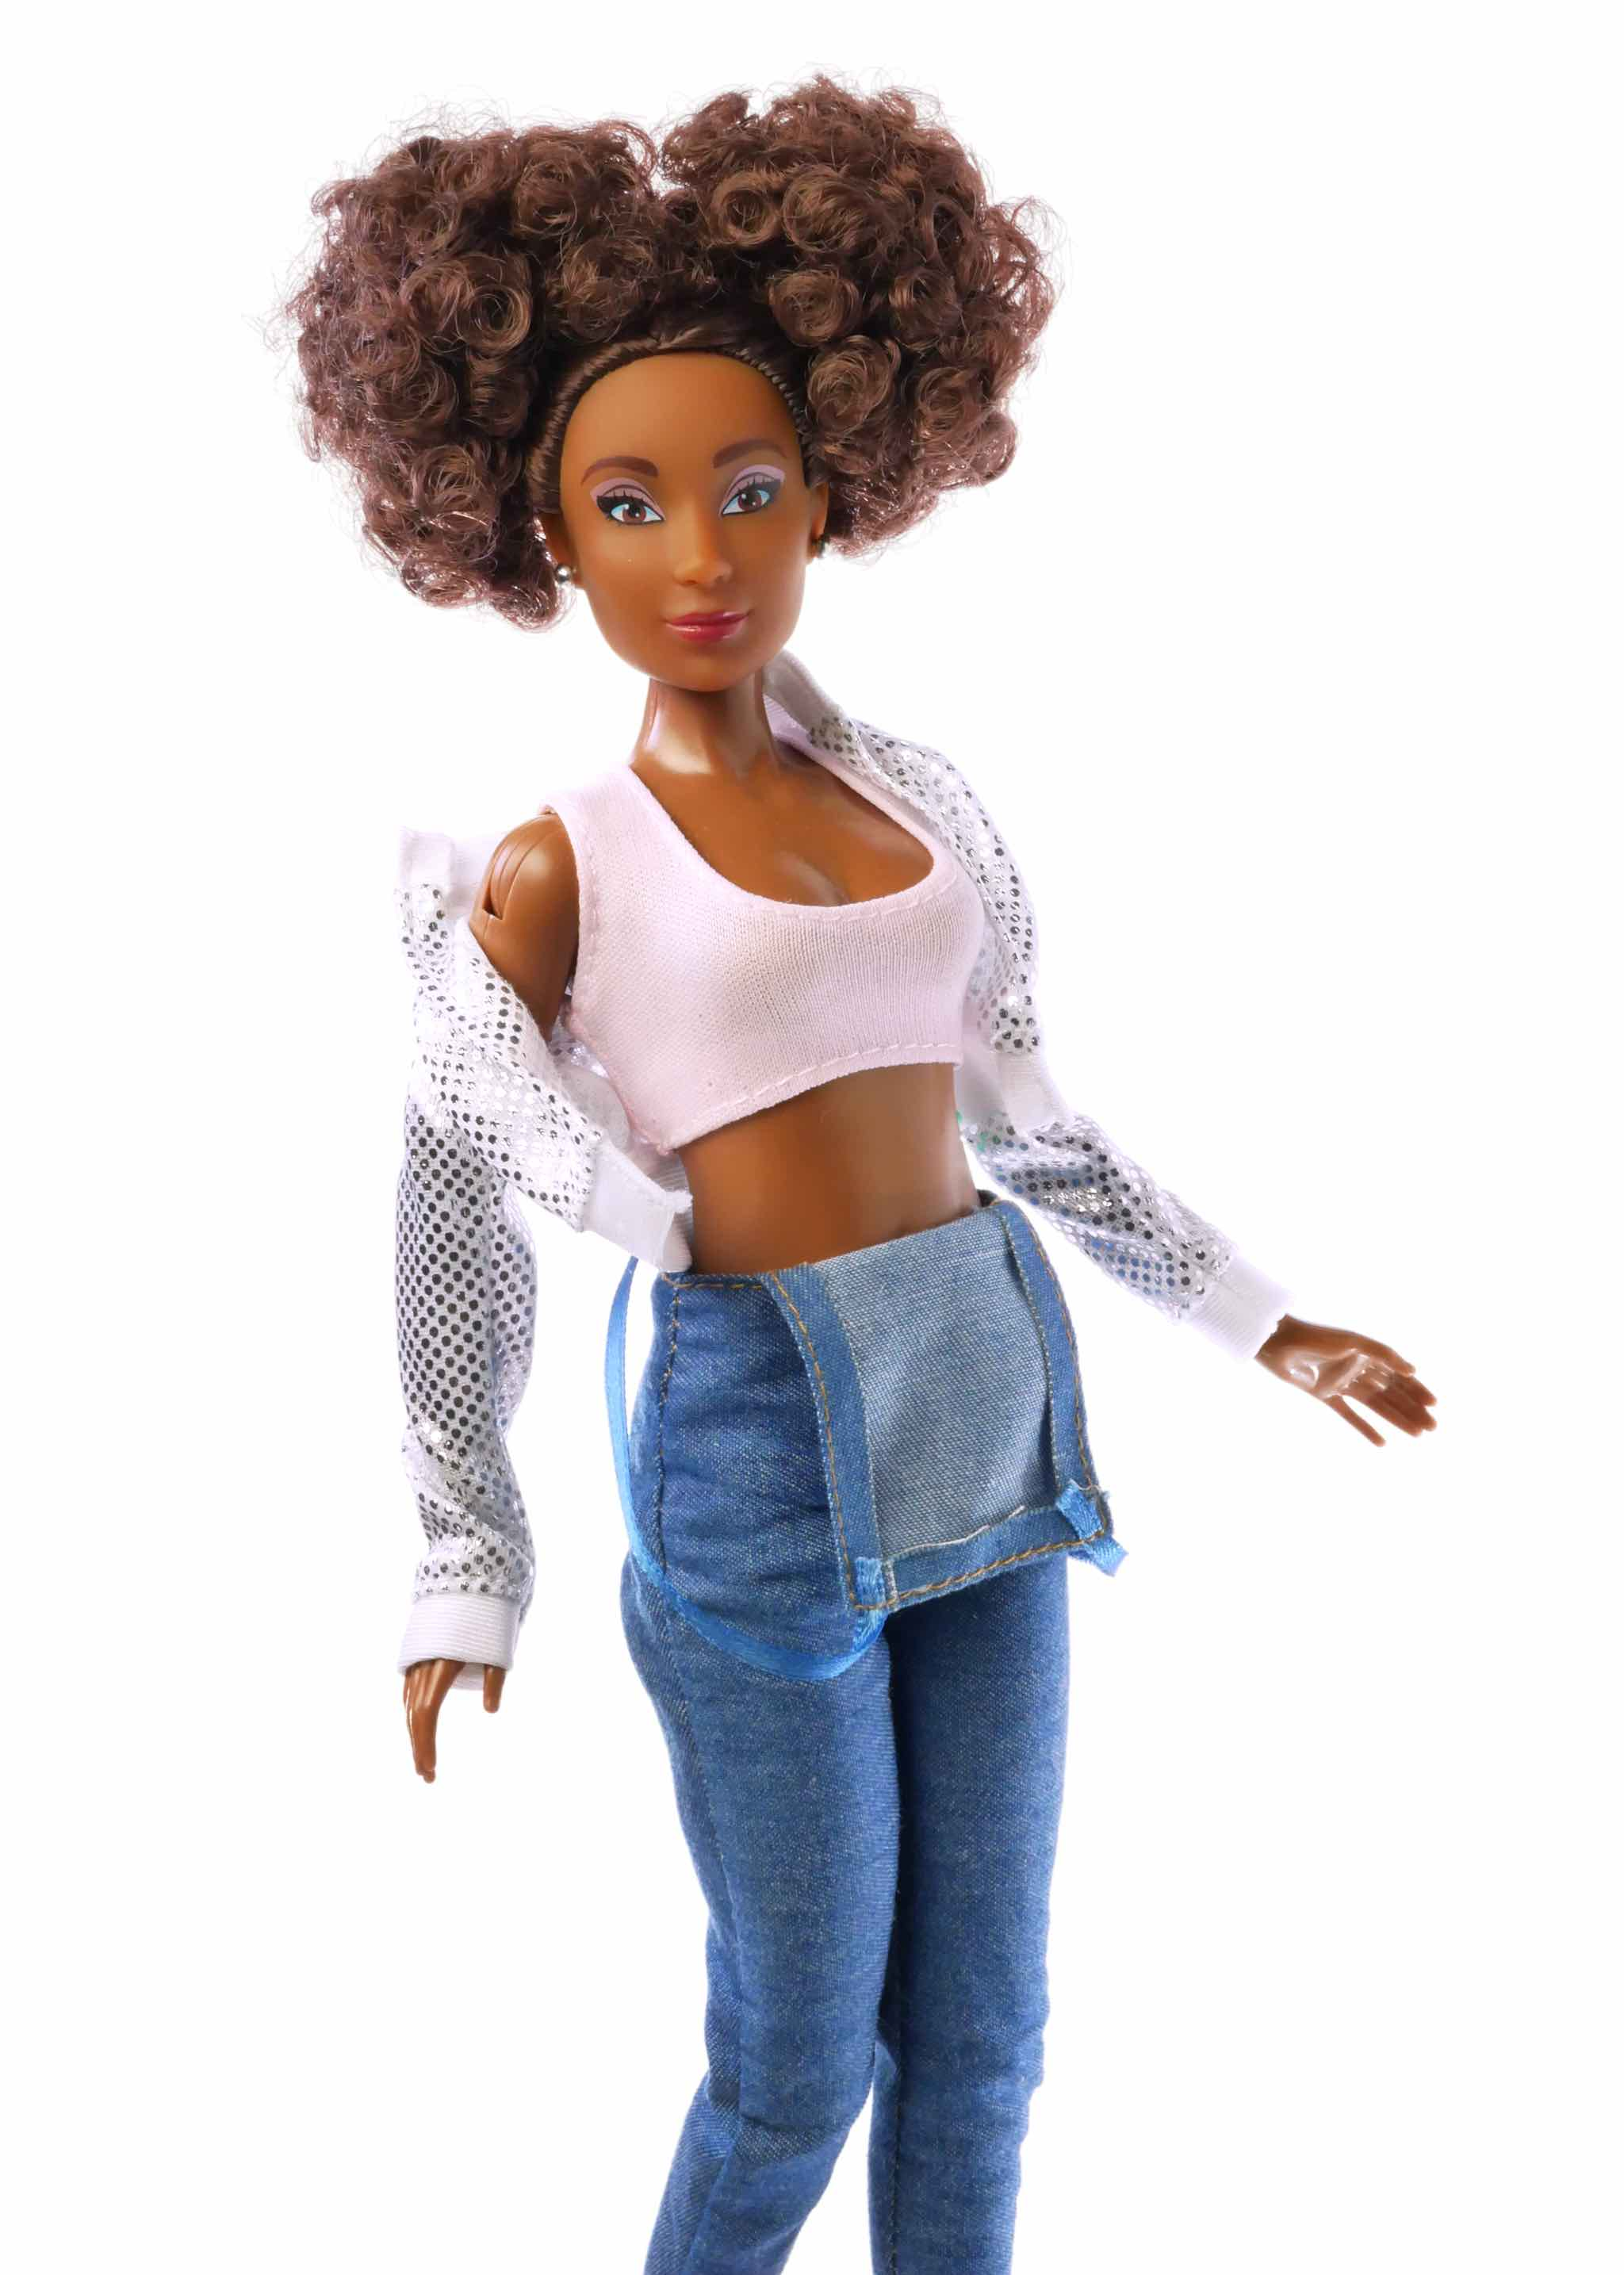 up close curly brown hair fashion doll wearing silver jacket pink top and camo shorts